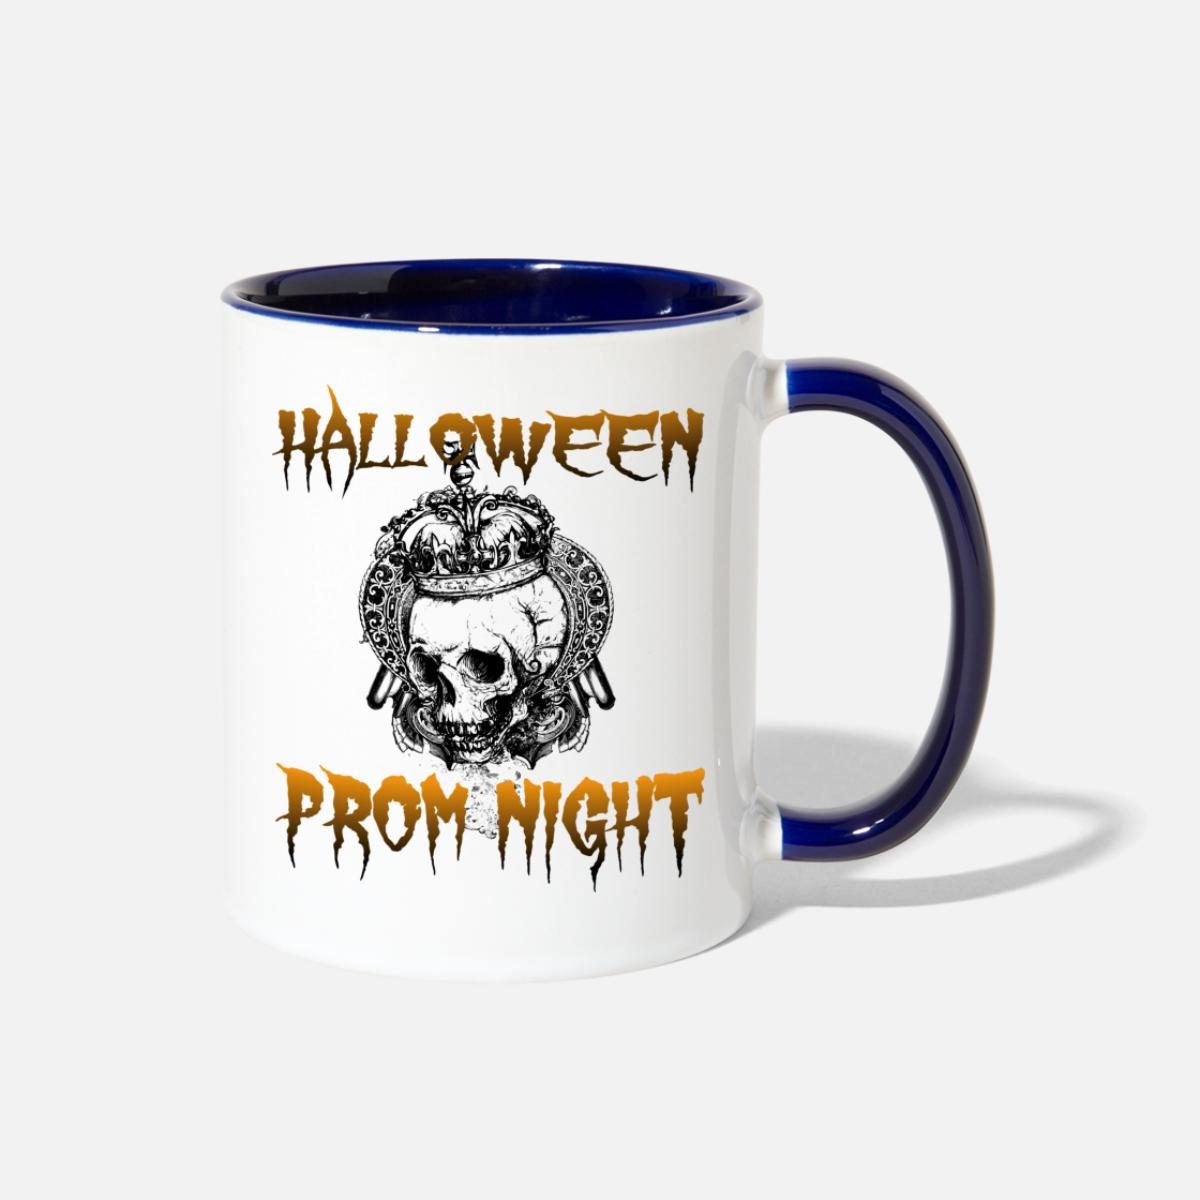 compare and contrast halloween night to prom night